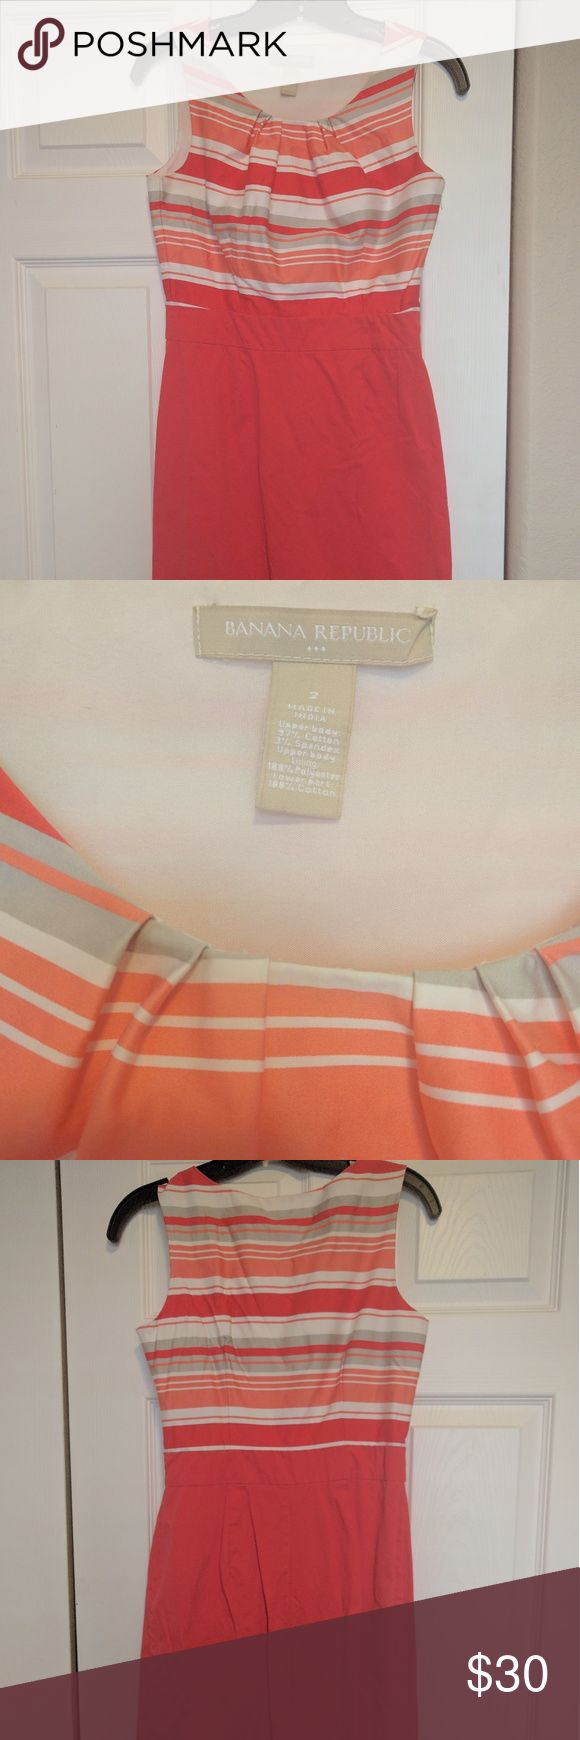 Banana Republic dress, coral colors! Beautiful dress, so well made. Banana Republic, size 2. Great for summer BBQs or other special occasions. Zipper on the side, hits above knee, flattering fit. Only worn a few times! Banana Republic Dresses